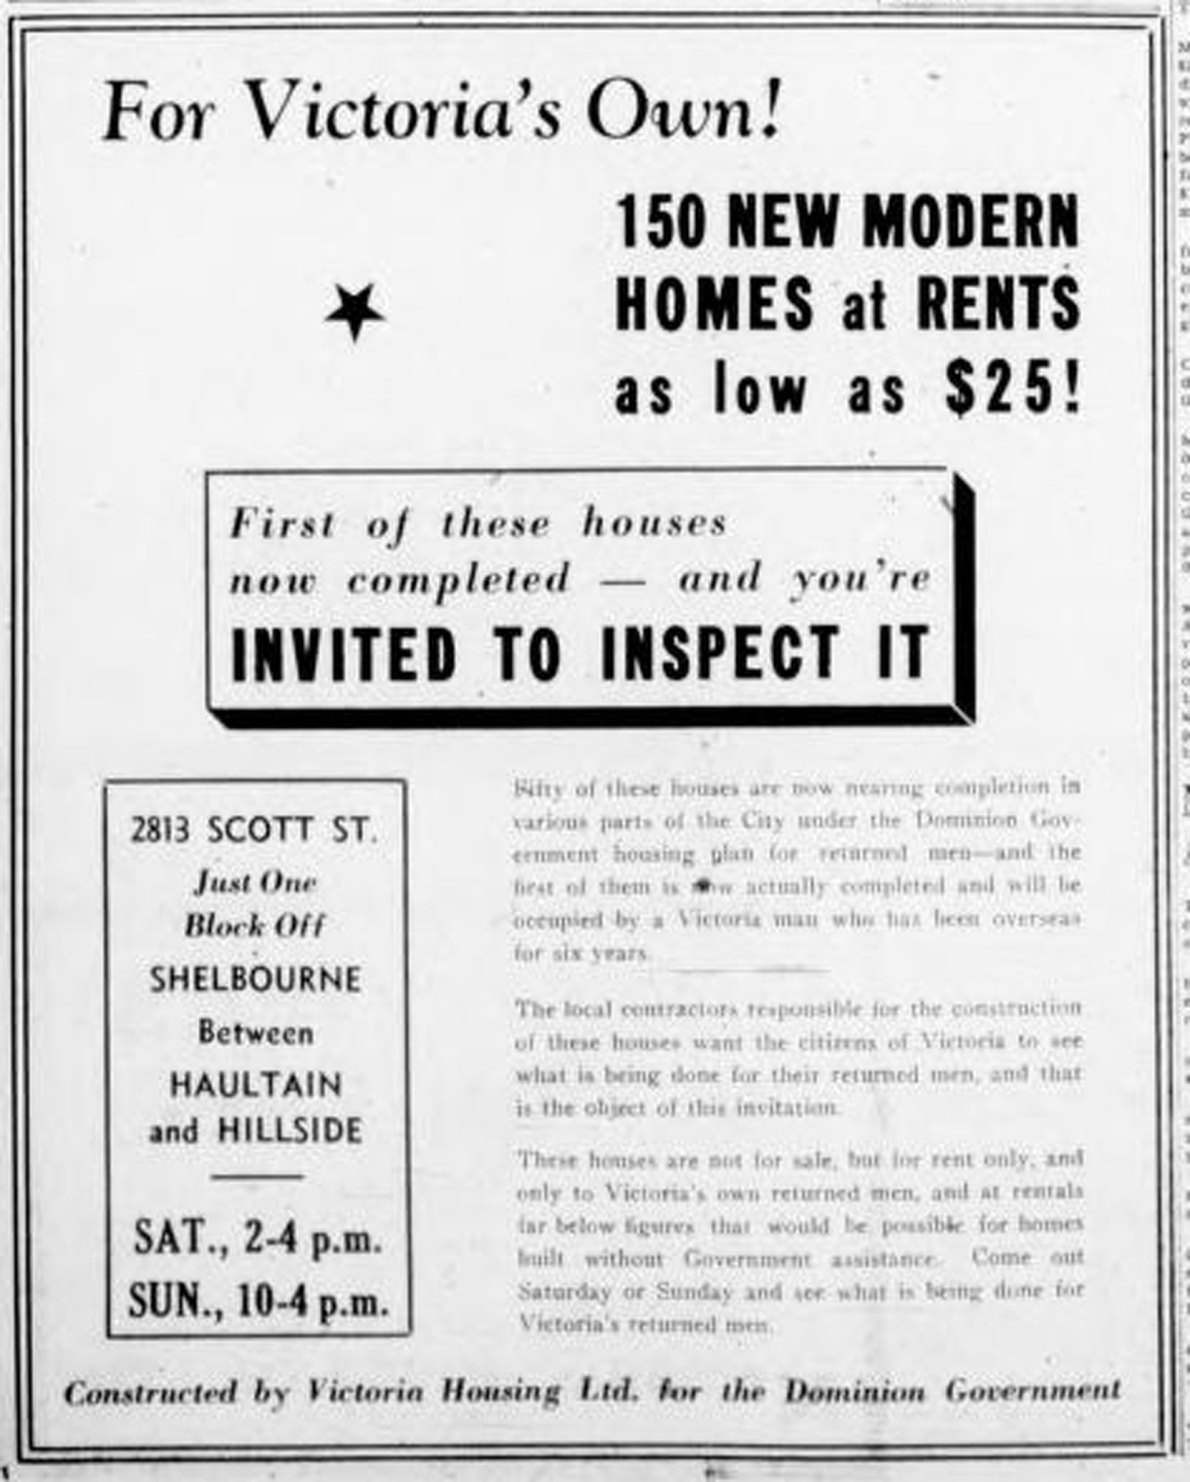 December 1945 advertisement for new house rentals. Show home at 2813 Scott Street.